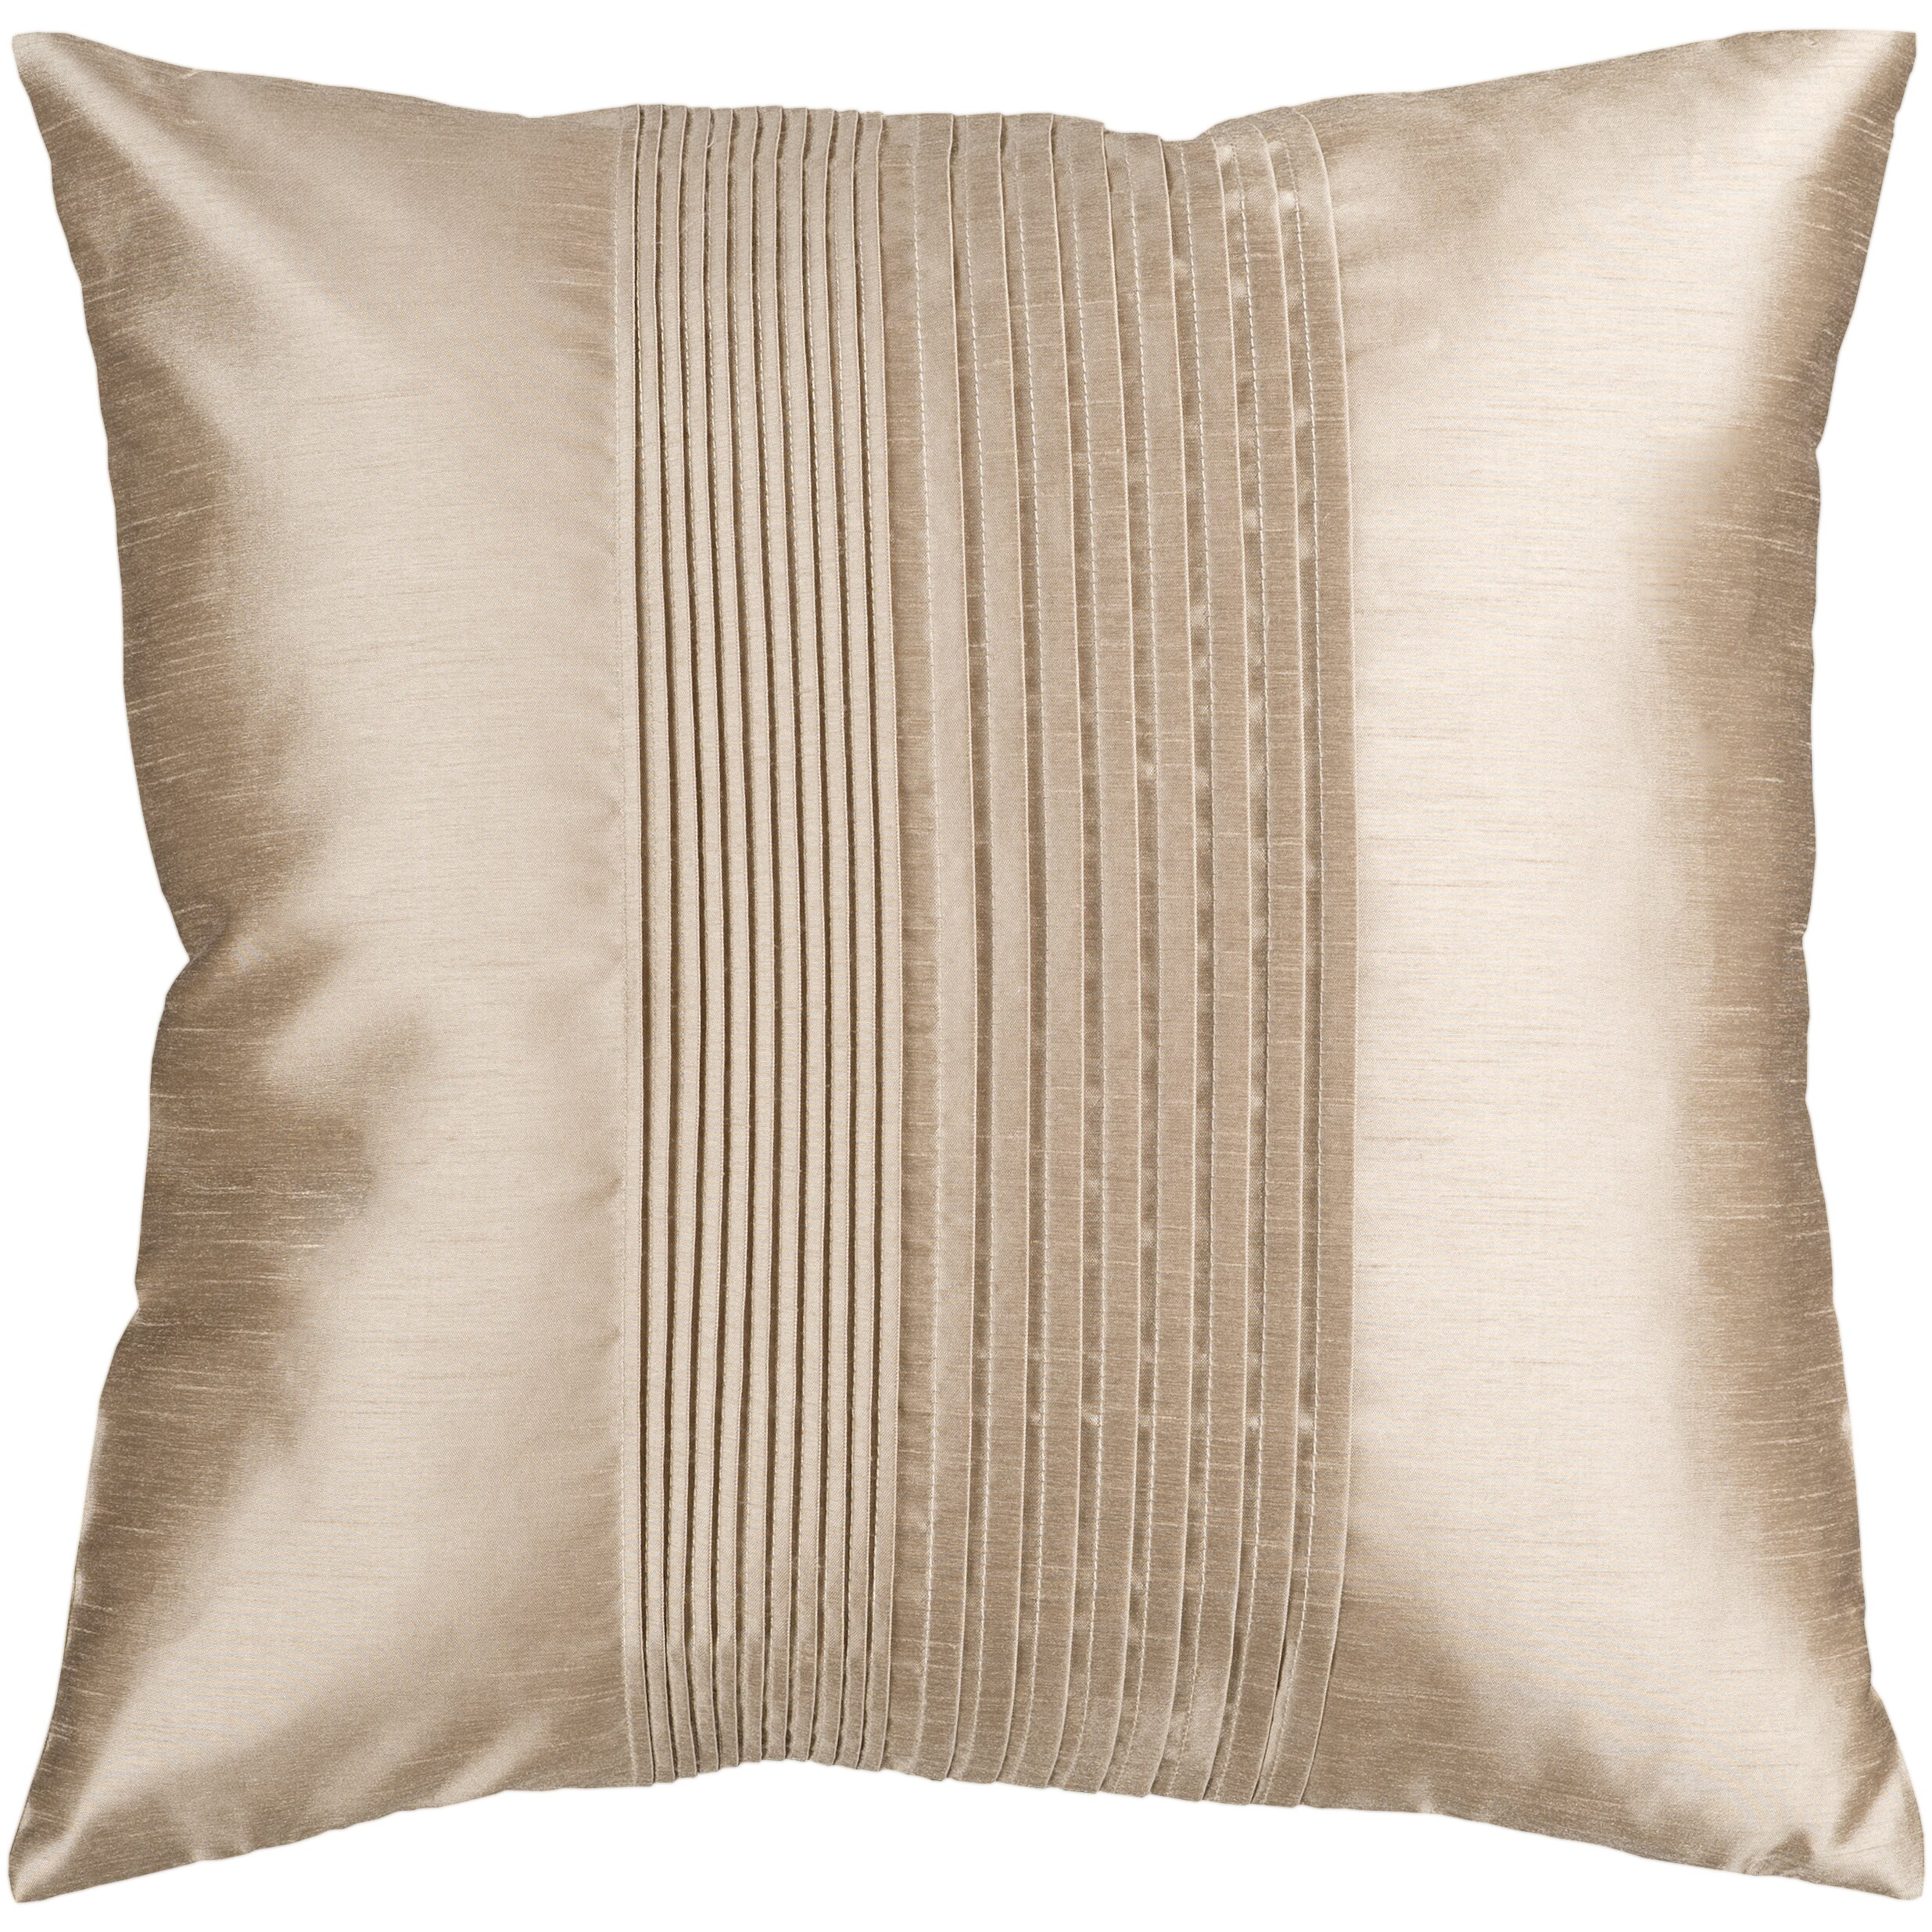 Mercer41 Grullo Solid Pleated Throw Pillow Cover & Reviews Wayfair